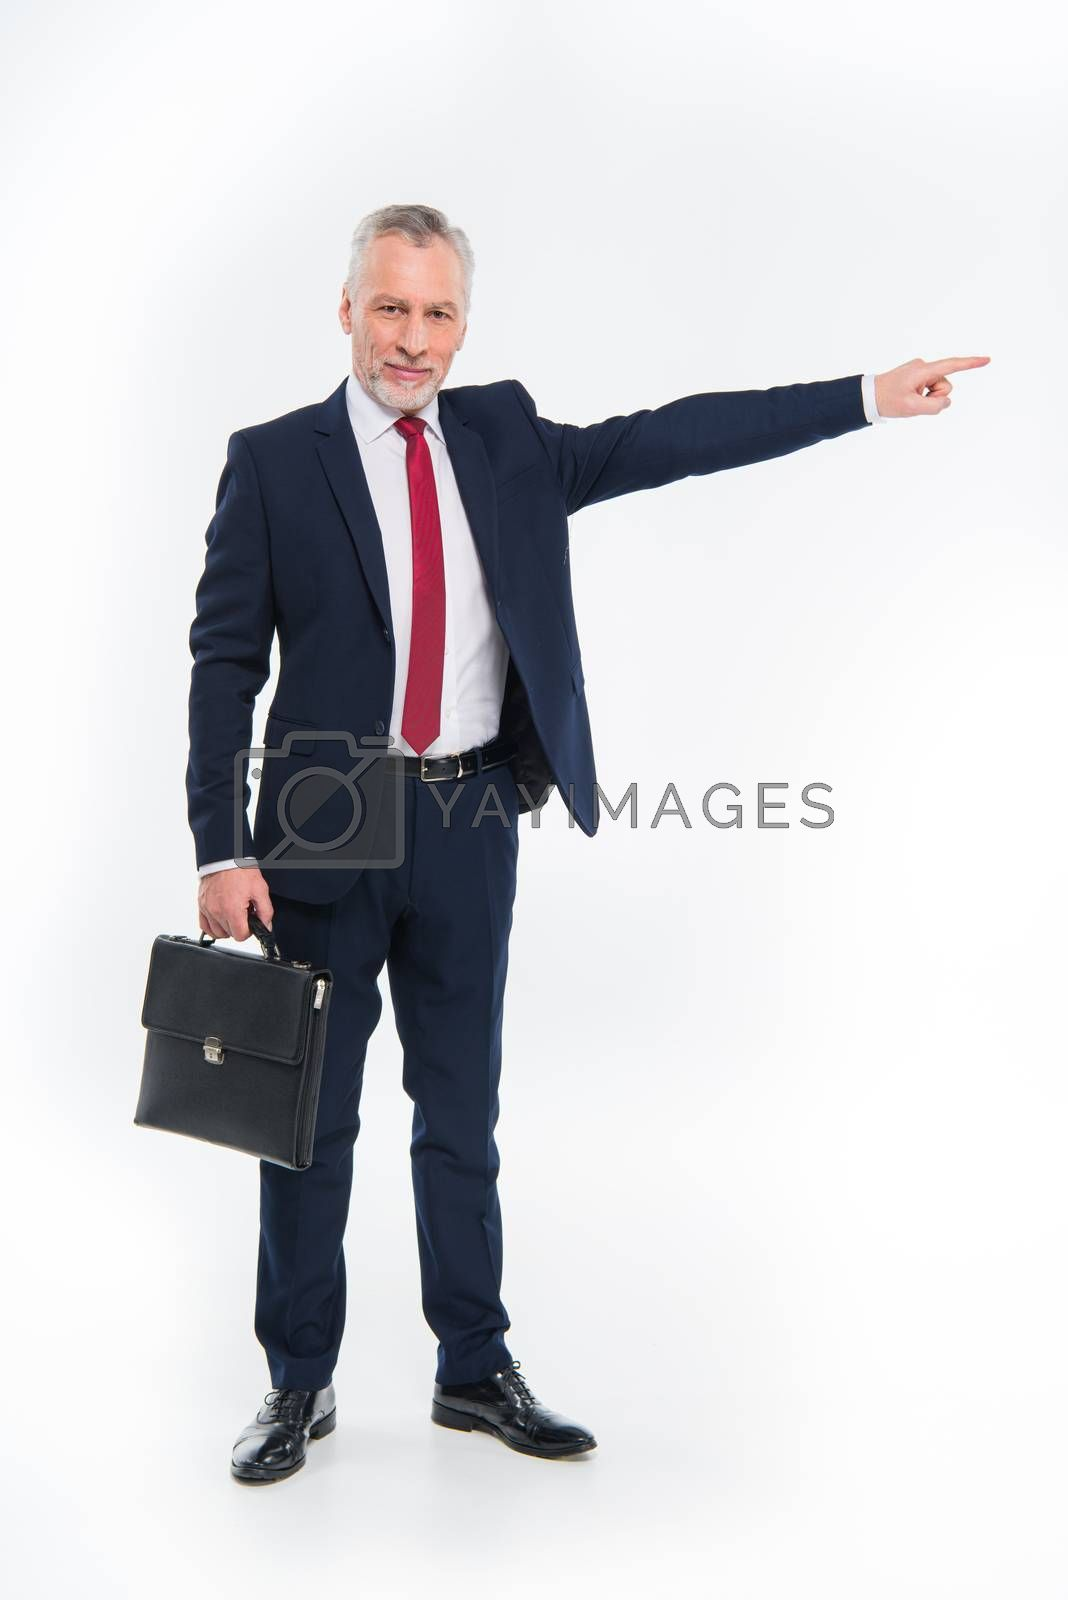 Royalty free image of Smiling businessman pointing away by LightFieldStudios